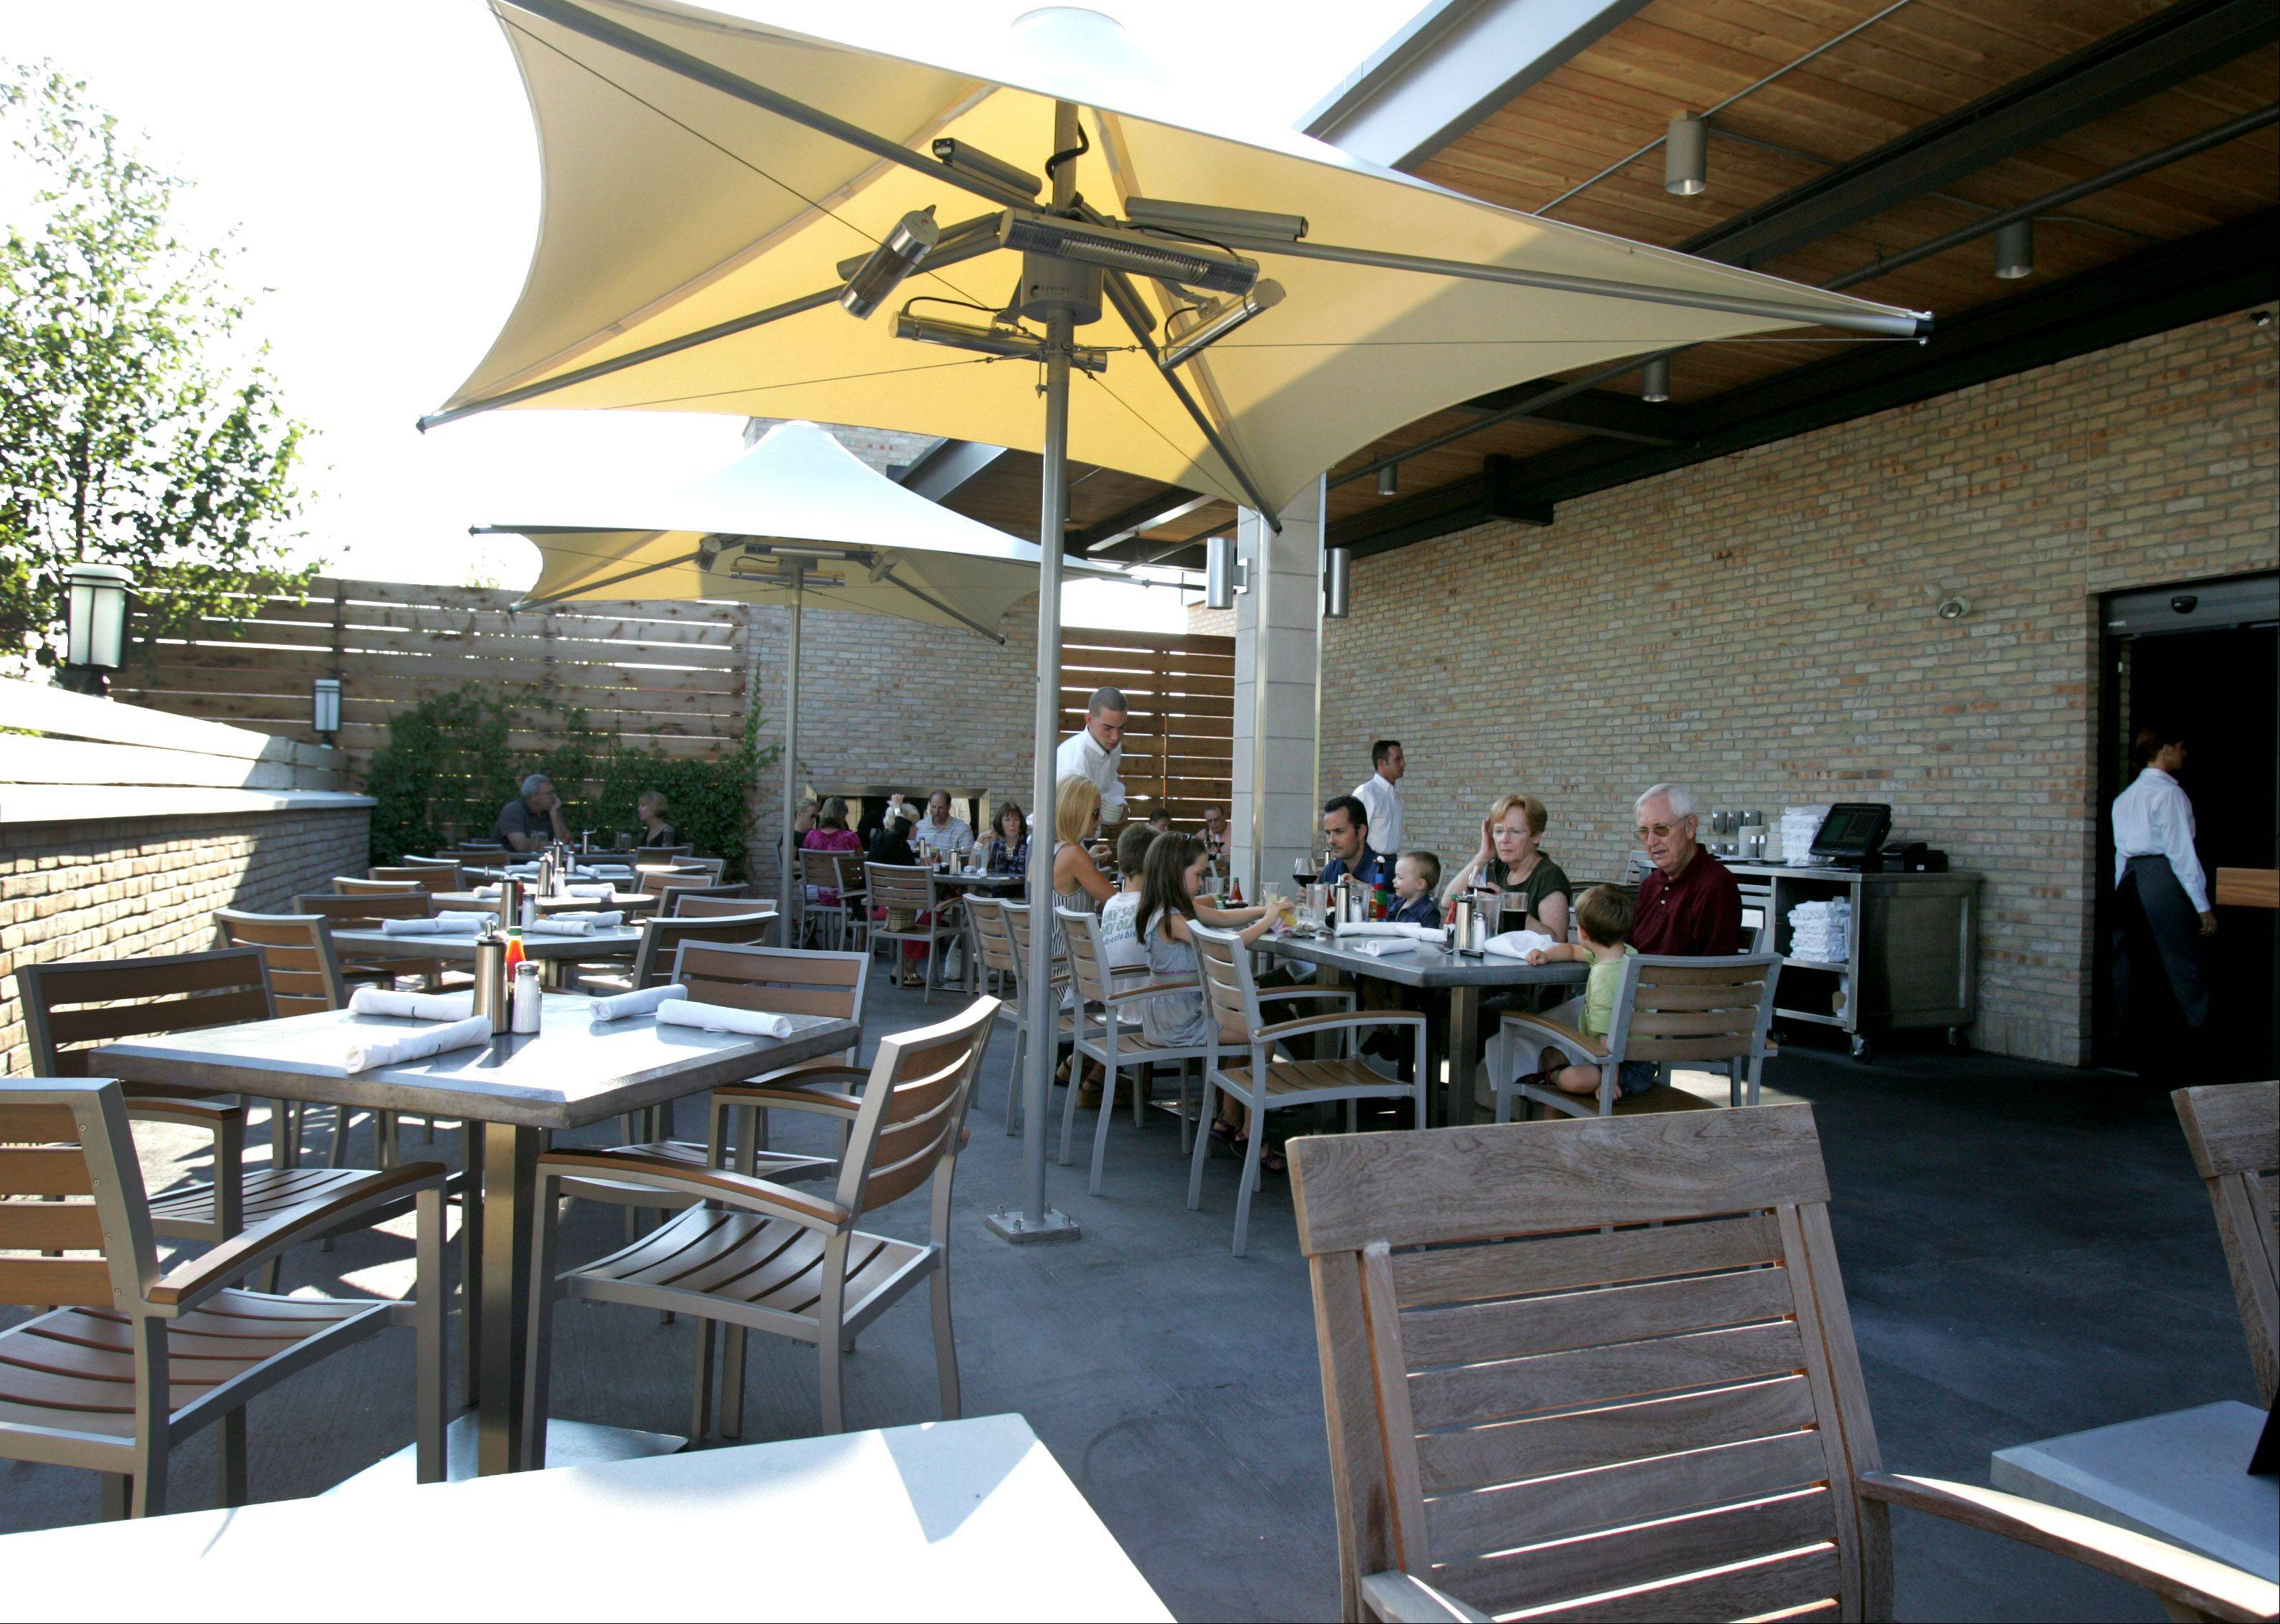 Al fresco dining is available on an enclosed patio at Bakersfield Restaurant in Westmont.